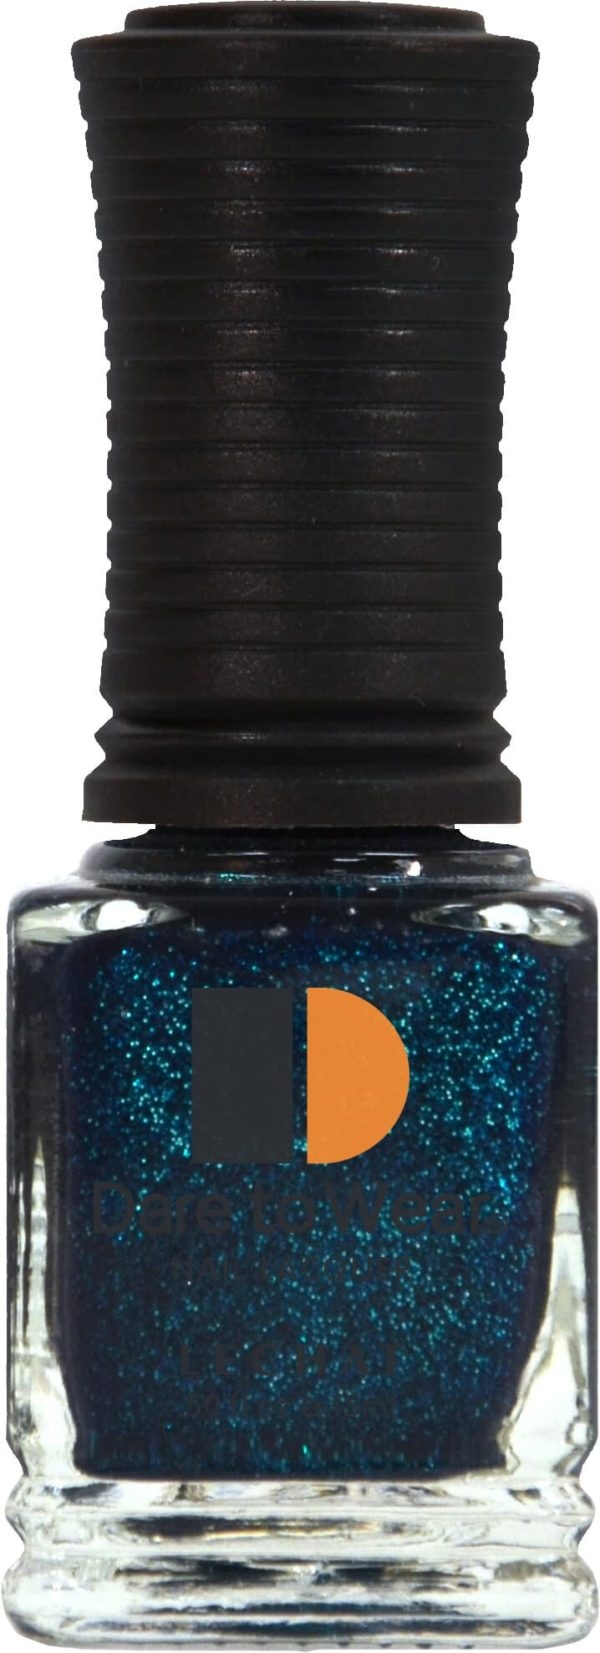 half liquid ounce bottle of blue and glitter lacquer.